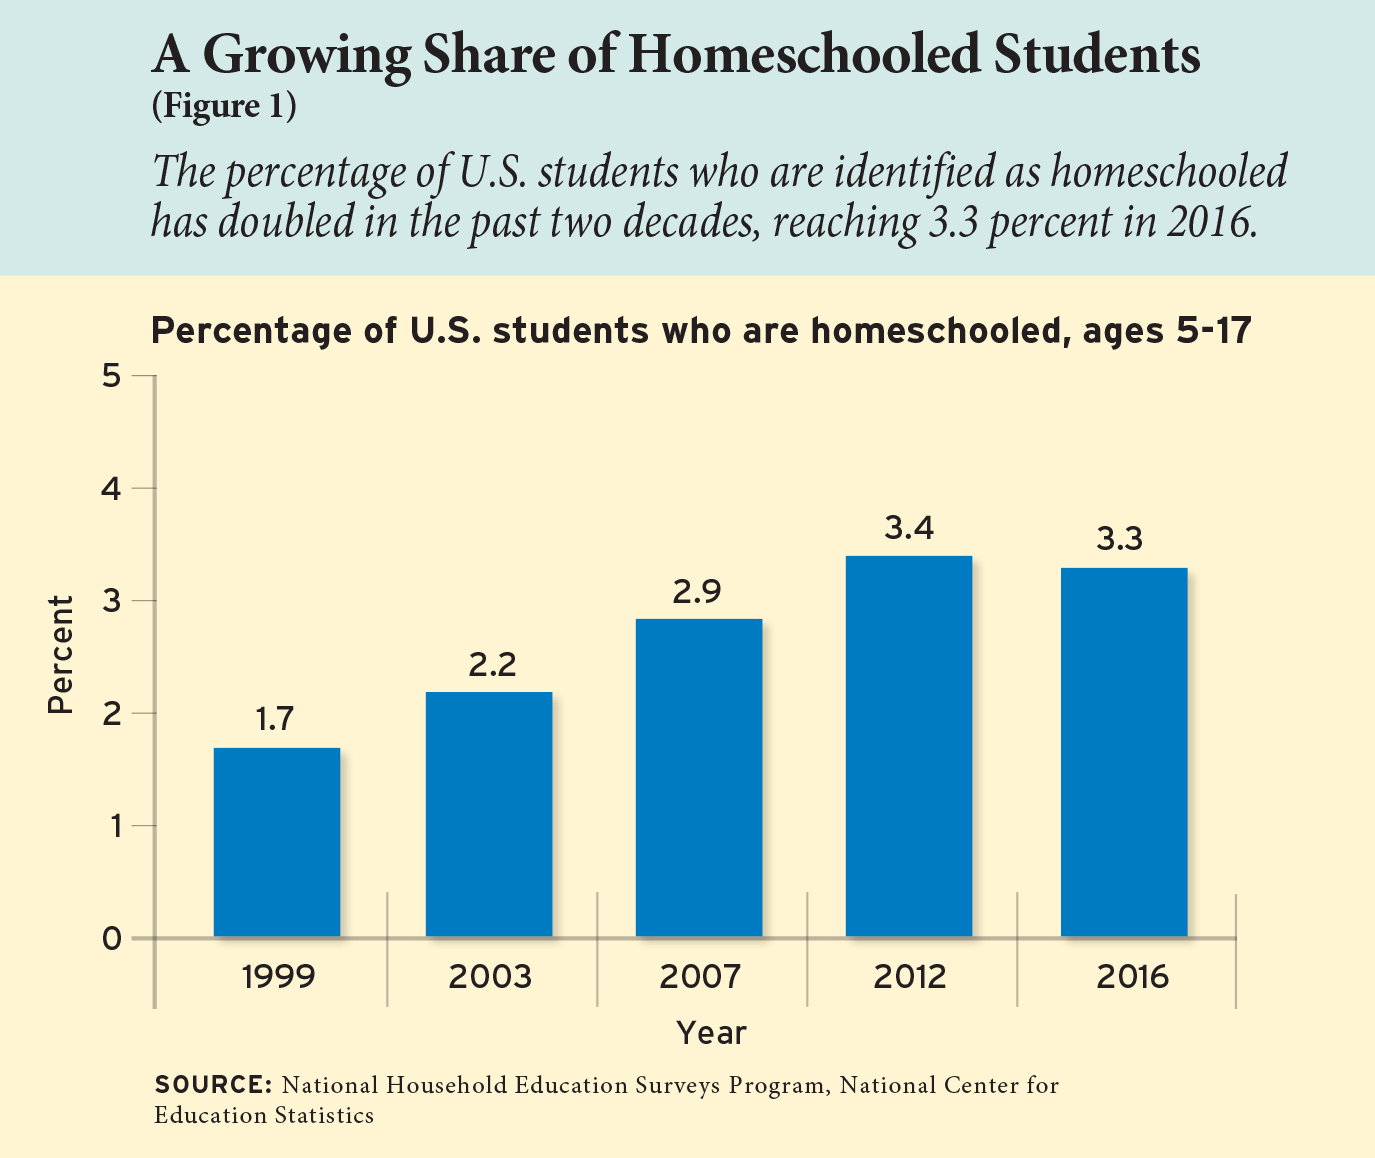 Figure 1: A Growing Share of Homeschooled Students